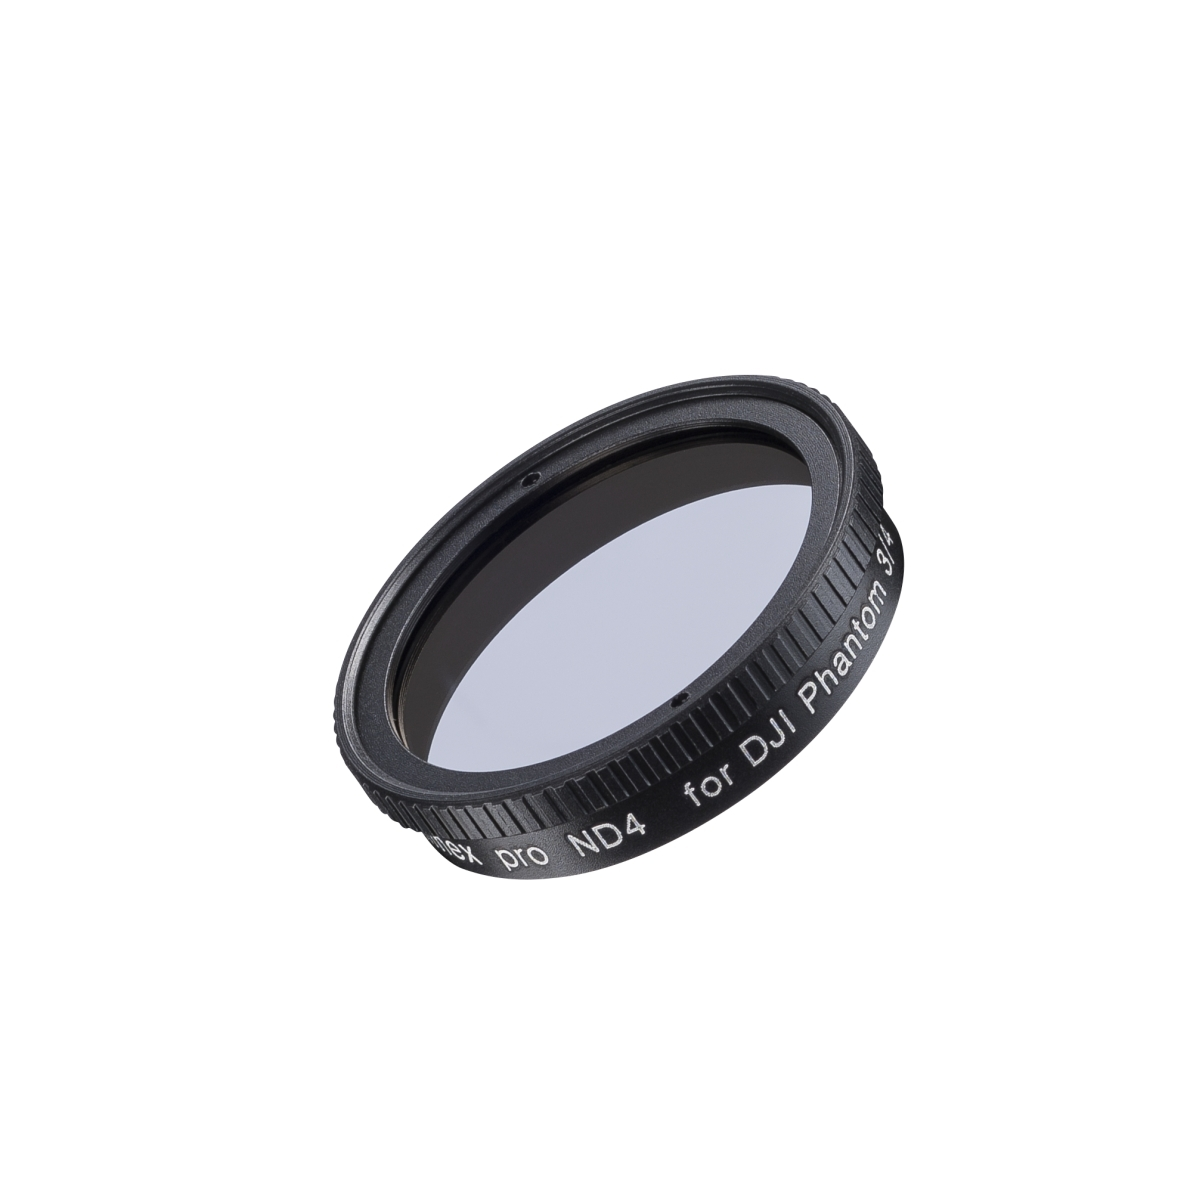 Walimex pro ND4 drone filters for DJI Phantom 3/4